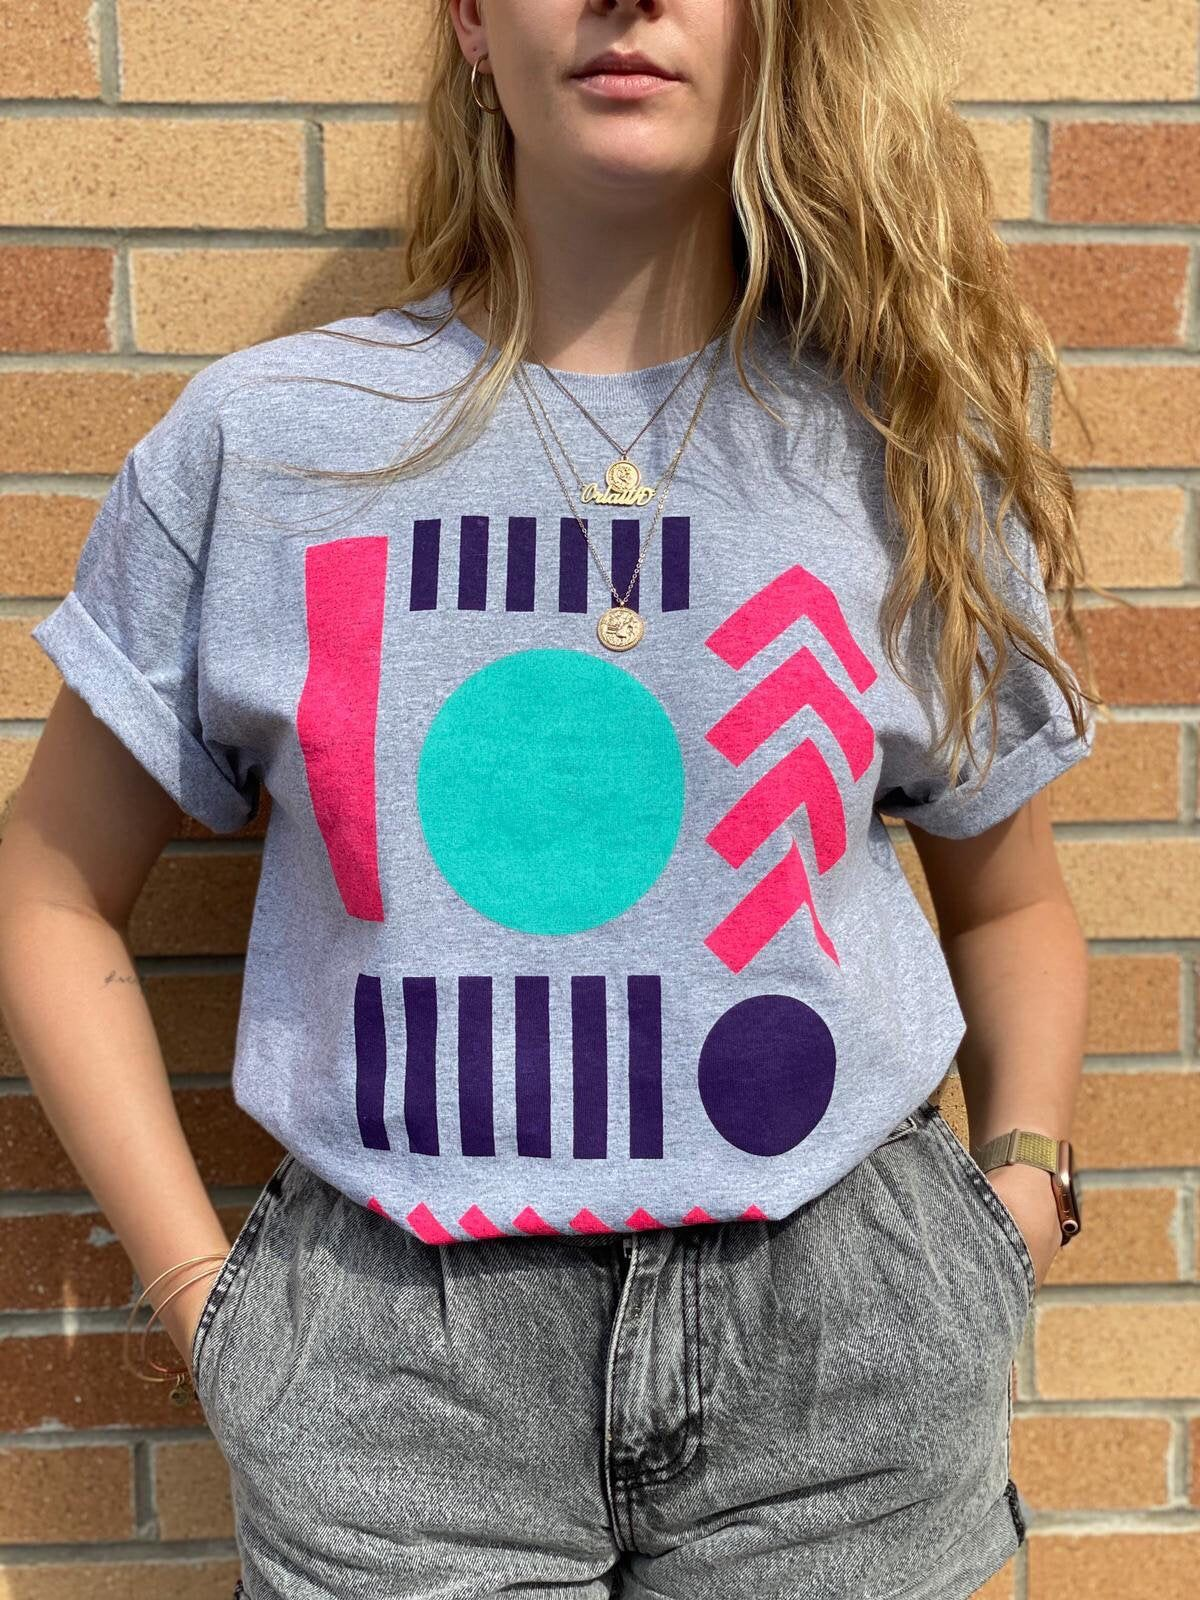 Excited to share this item from my #etsy shop: Hand printed graphic T-shirt #handprinted #geometricshapes #womenstshirt #hotpink #graphictshirt #printedtshirt #brightcolors #graphicshapes #tshirt